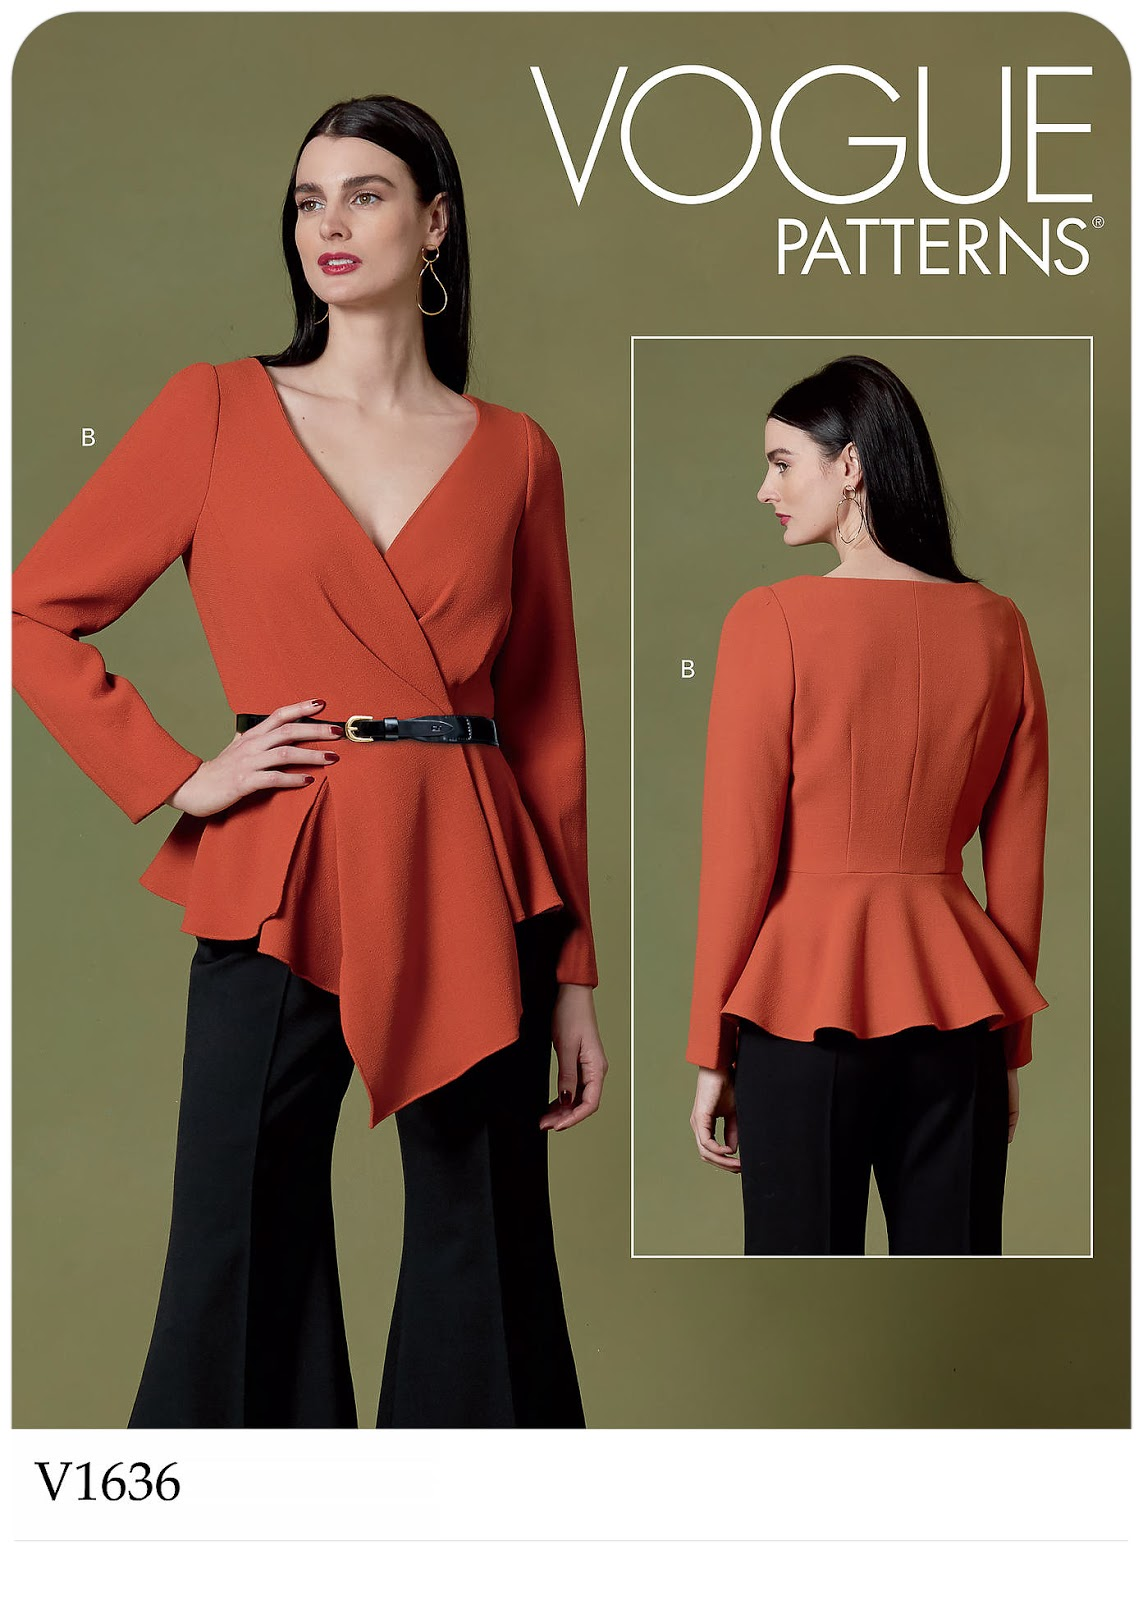 Vogue Patterns 1636 - #V1636